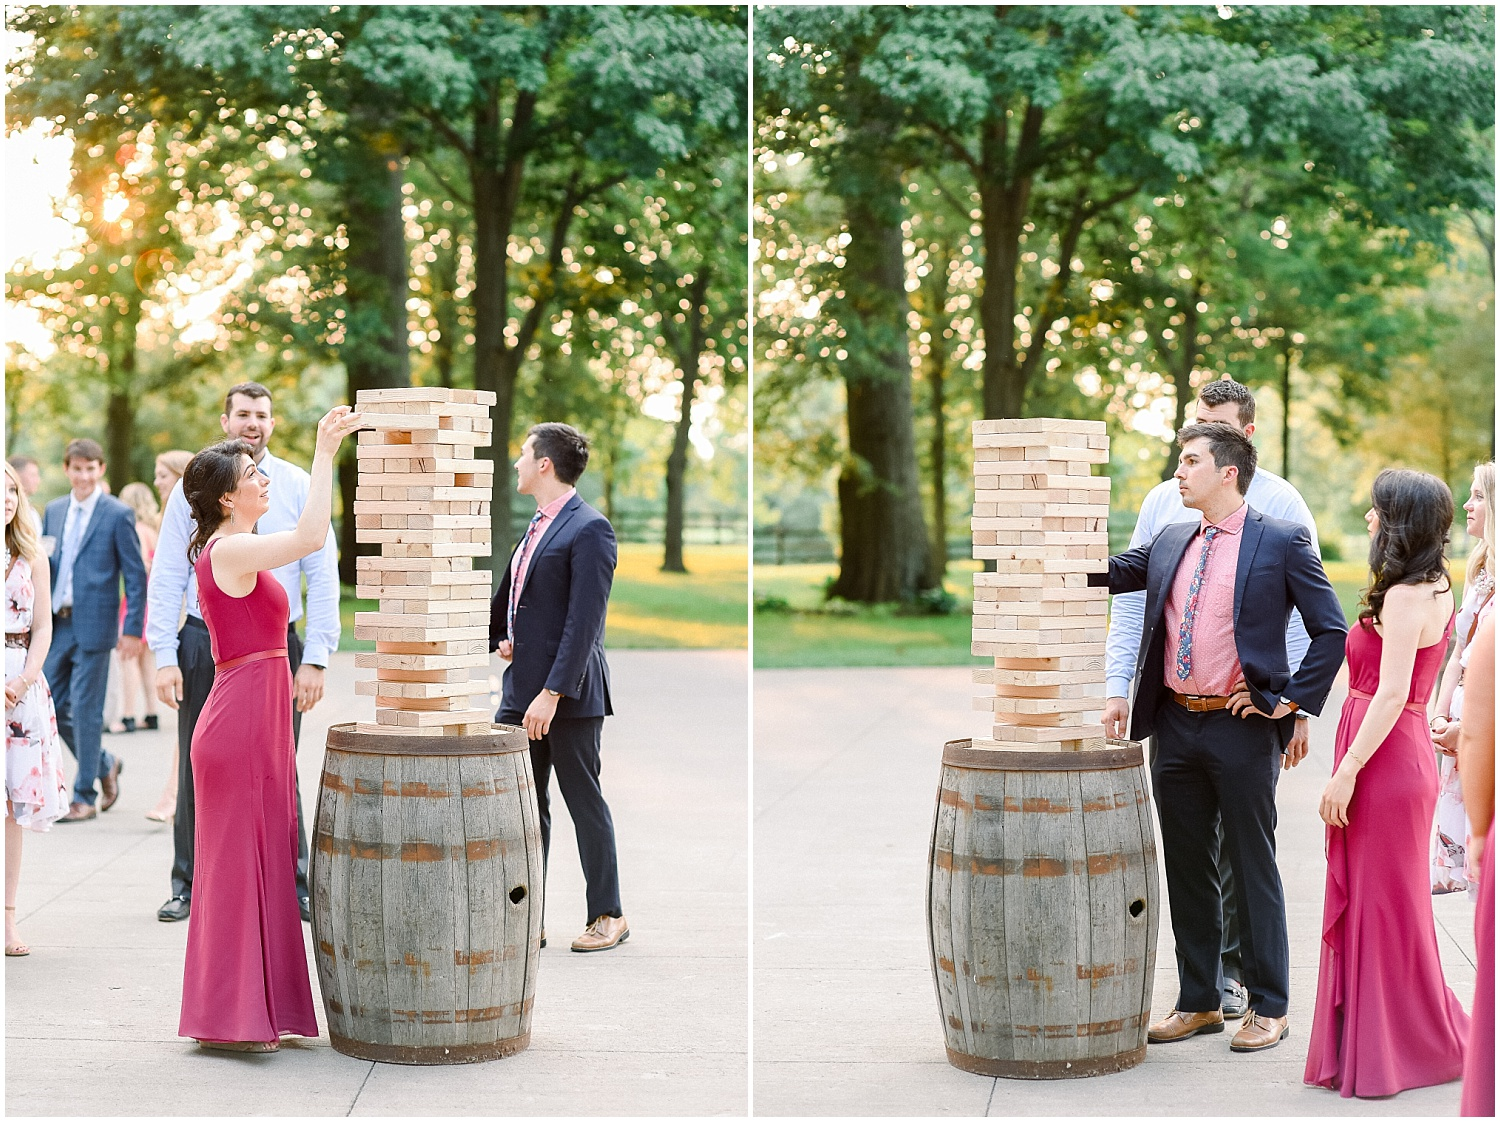 We waited for the Jenga to fall but it never did! ha!